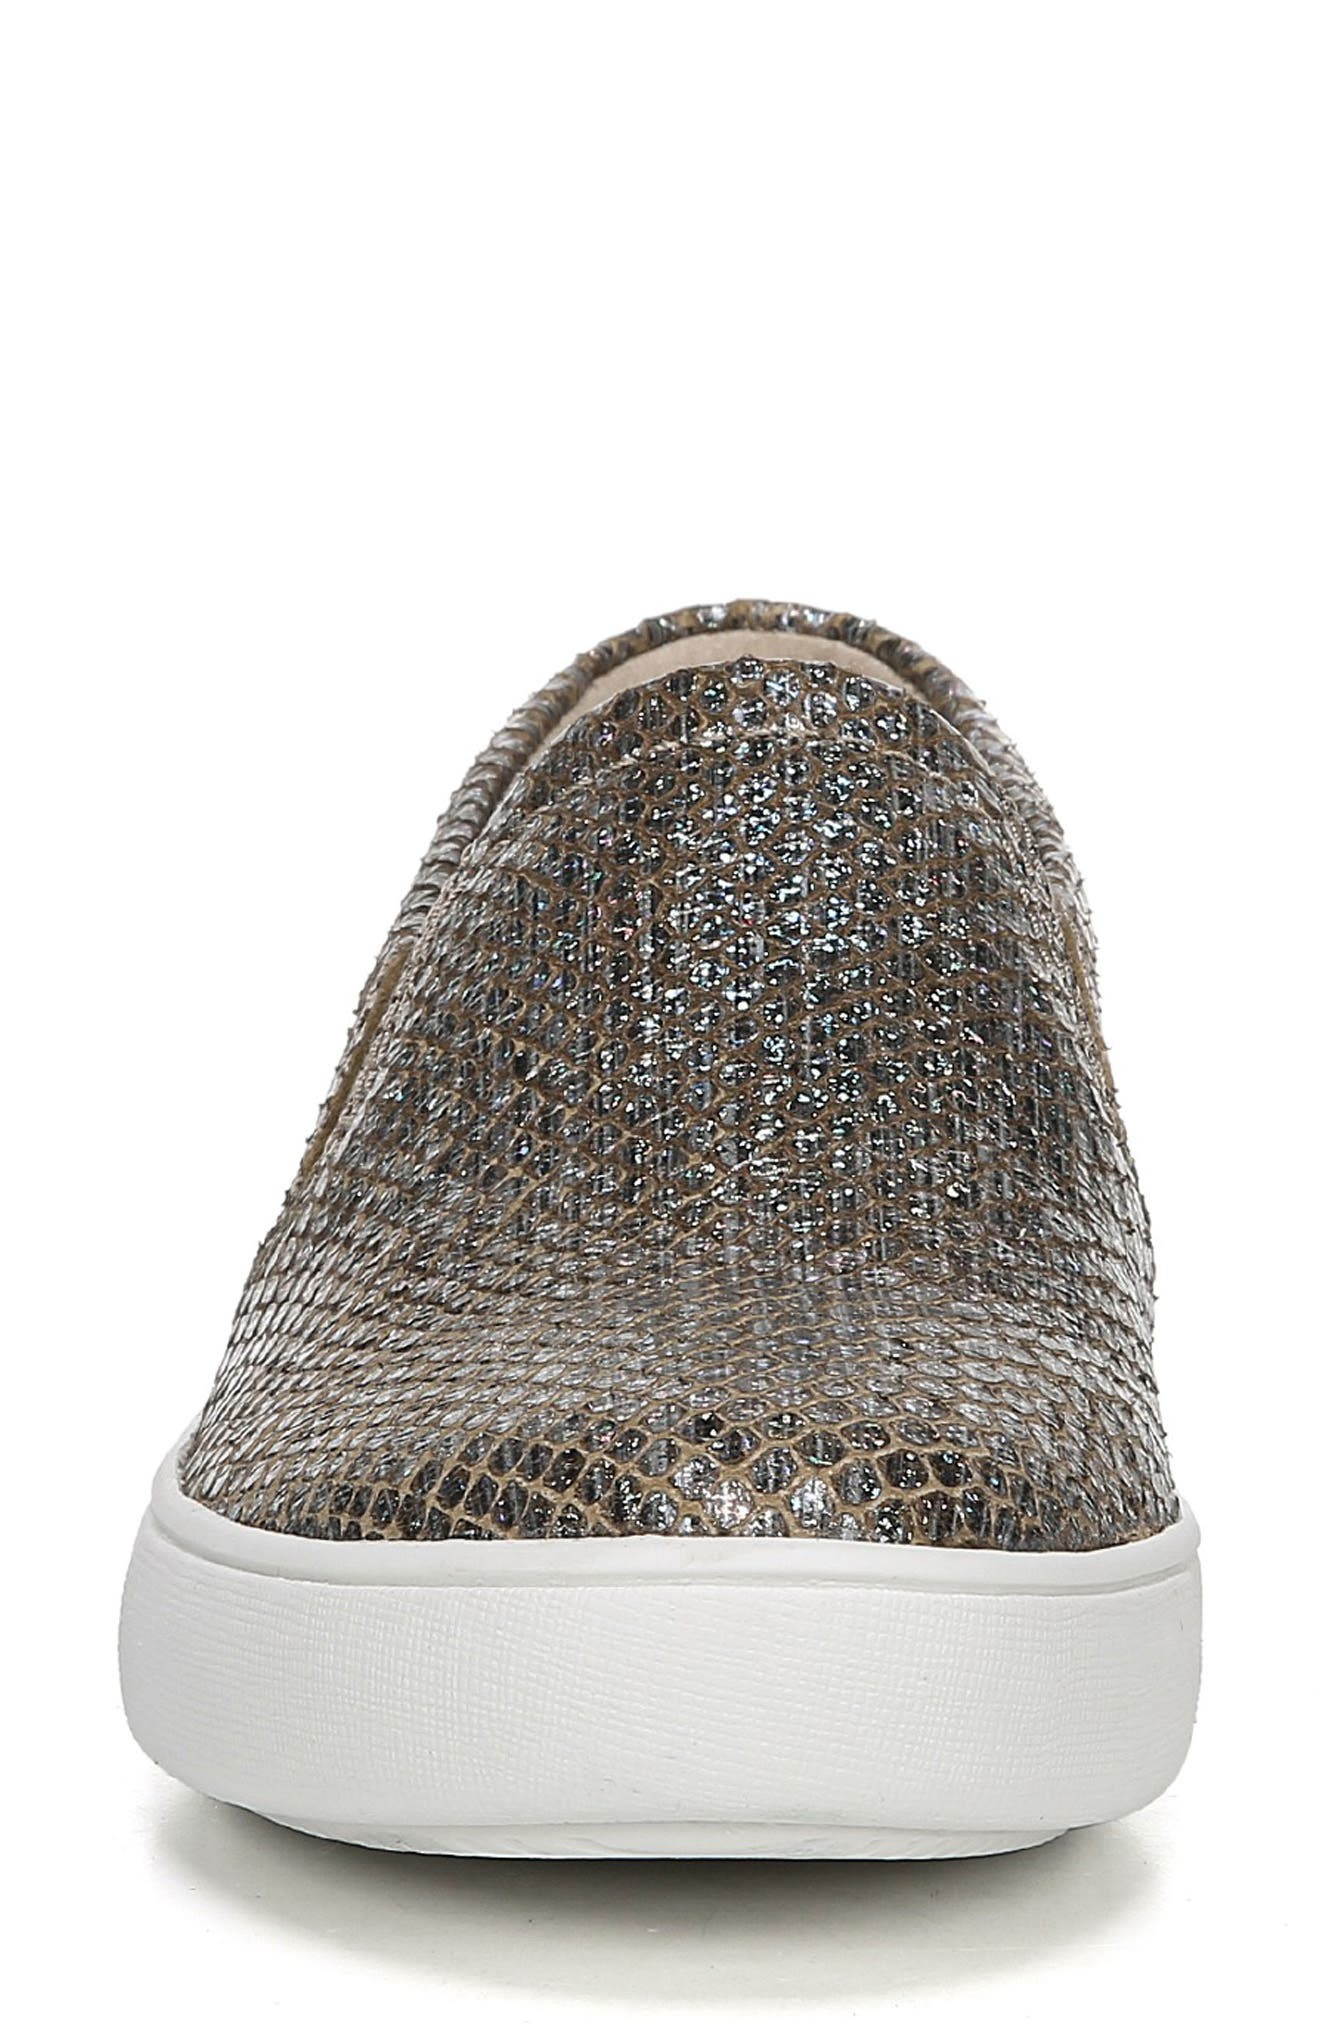 Marianne Slip-On Sneaker,                             Alternate thumbnail 4, color,                             PEWTER PRINTED LEATHER